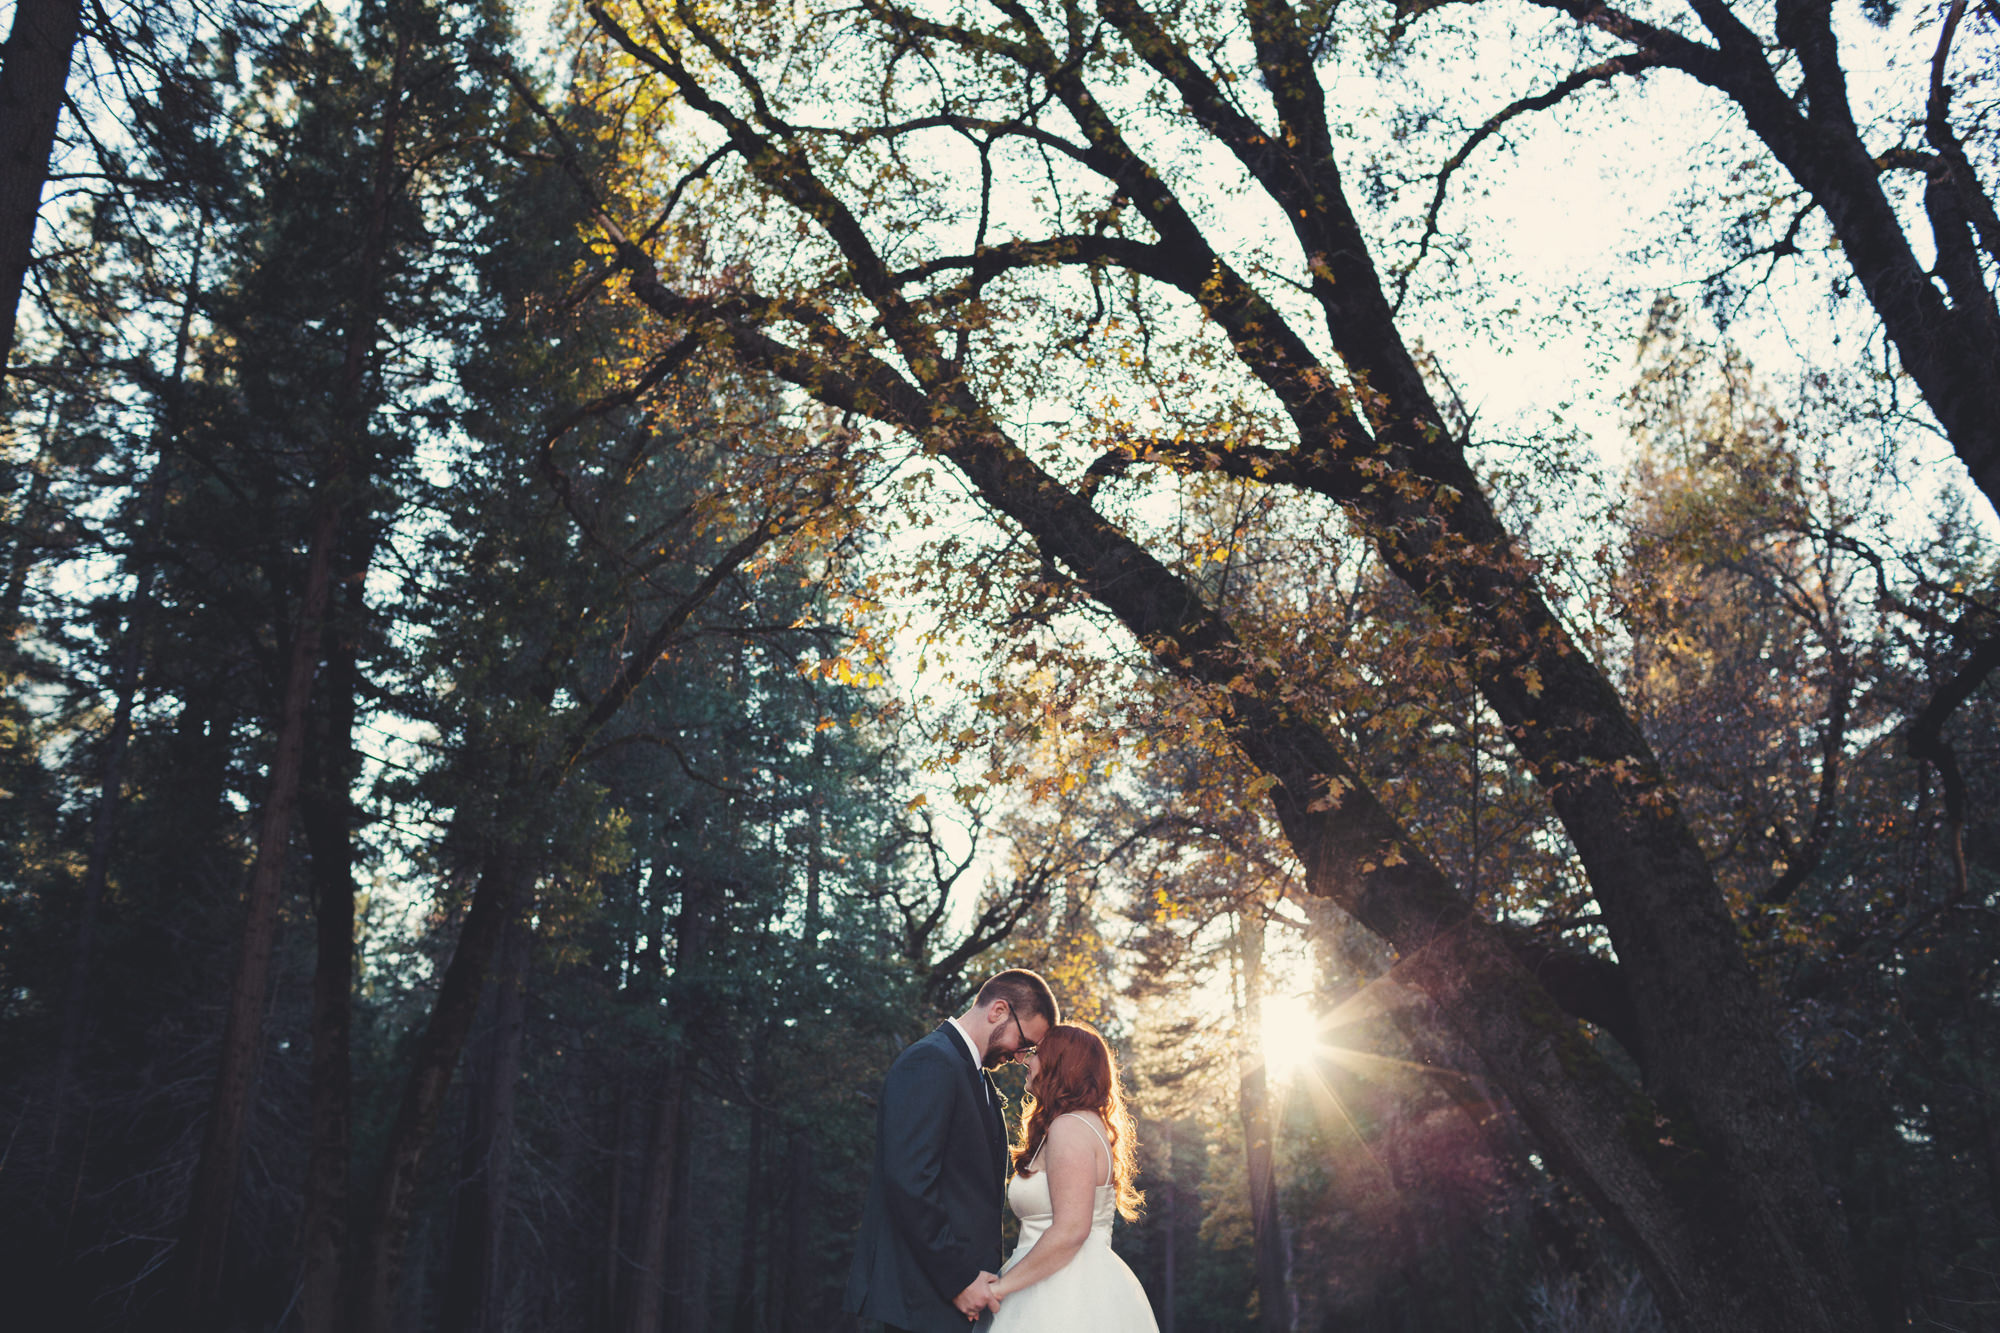 Yosemite wedding ©Anne-Claire Brun 103